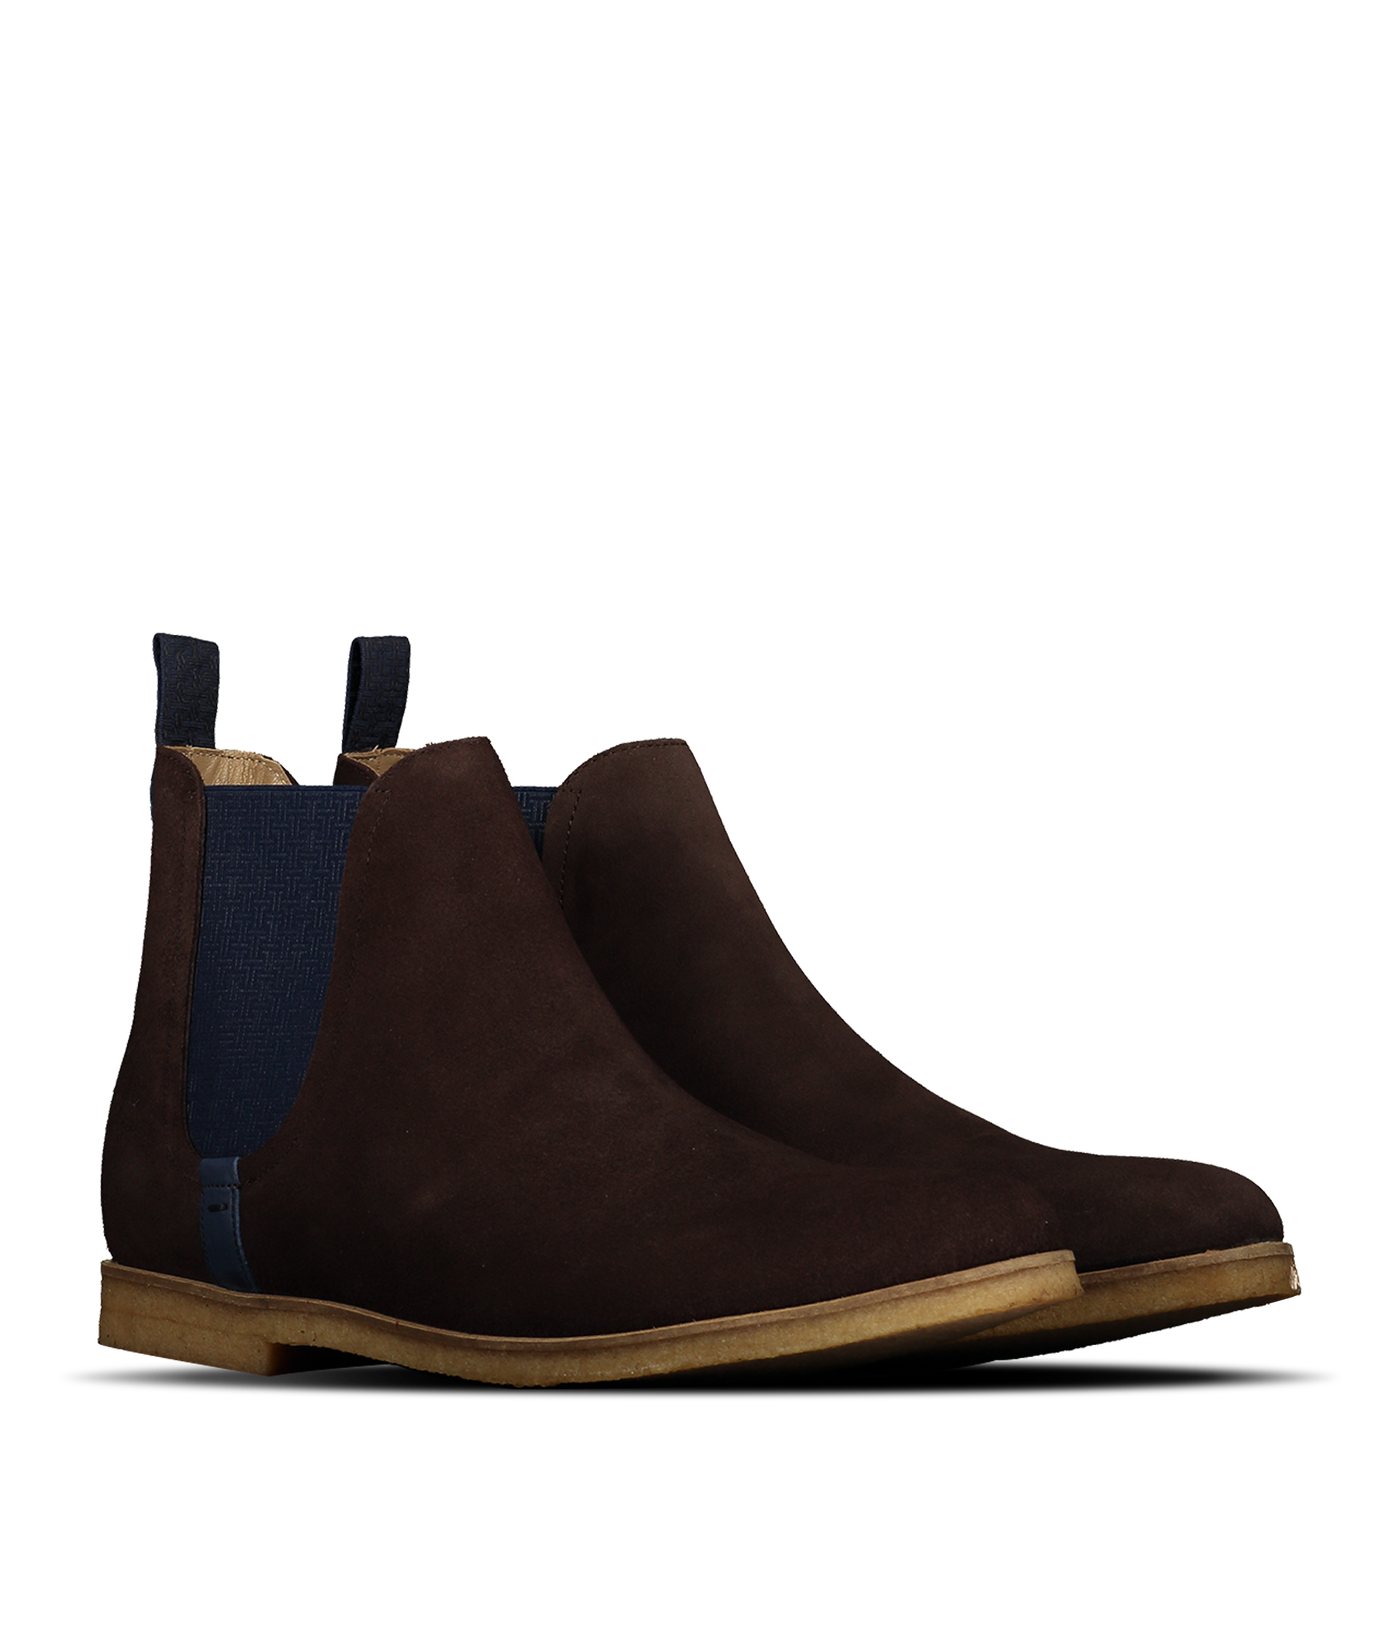 chelsea boot featured image